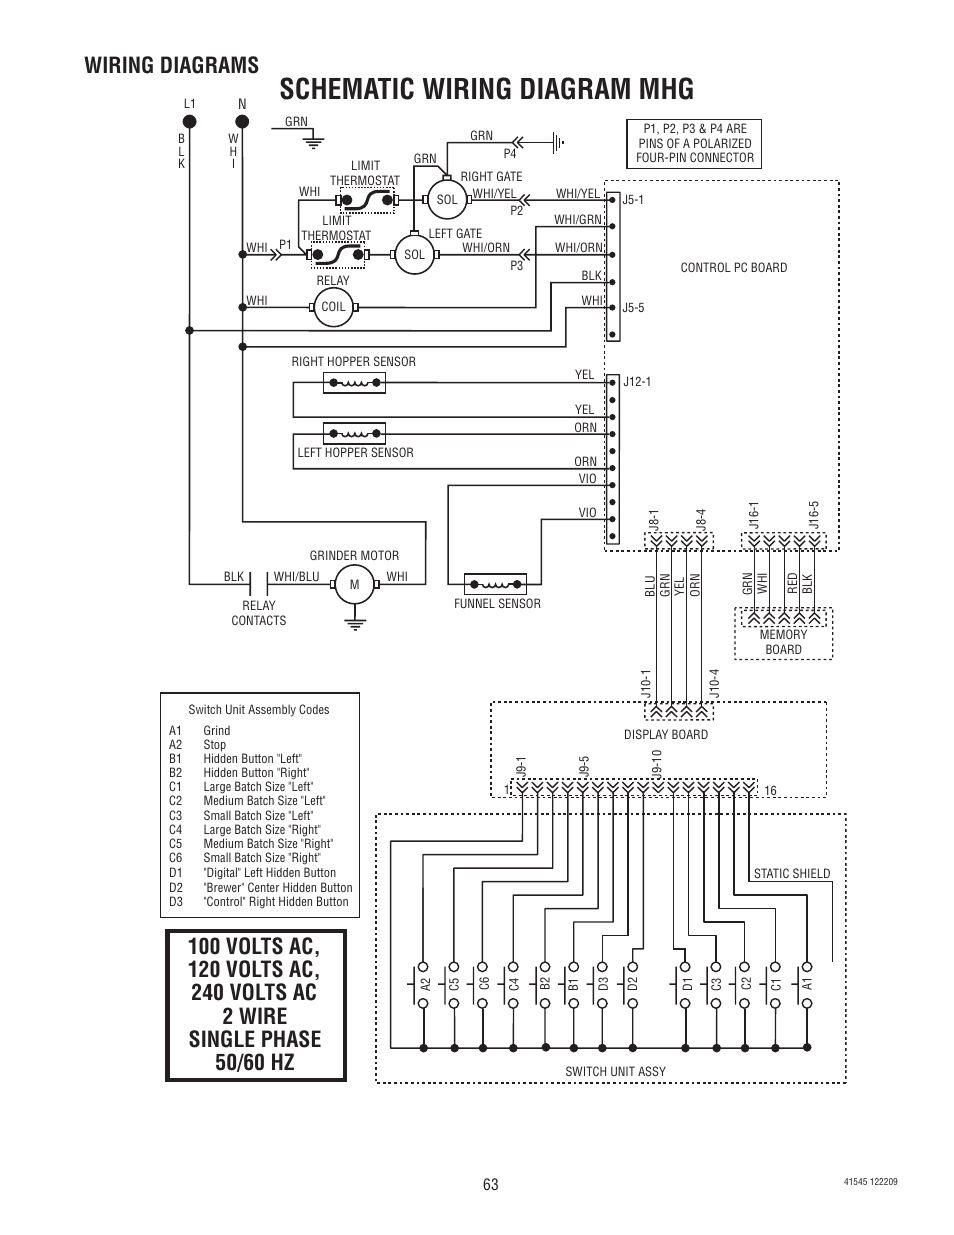 medium resolution of bunn mhg wiring diagram wiring diagramschematic wiring diagram mhg wiring diagrams bunn g9 2t dbc